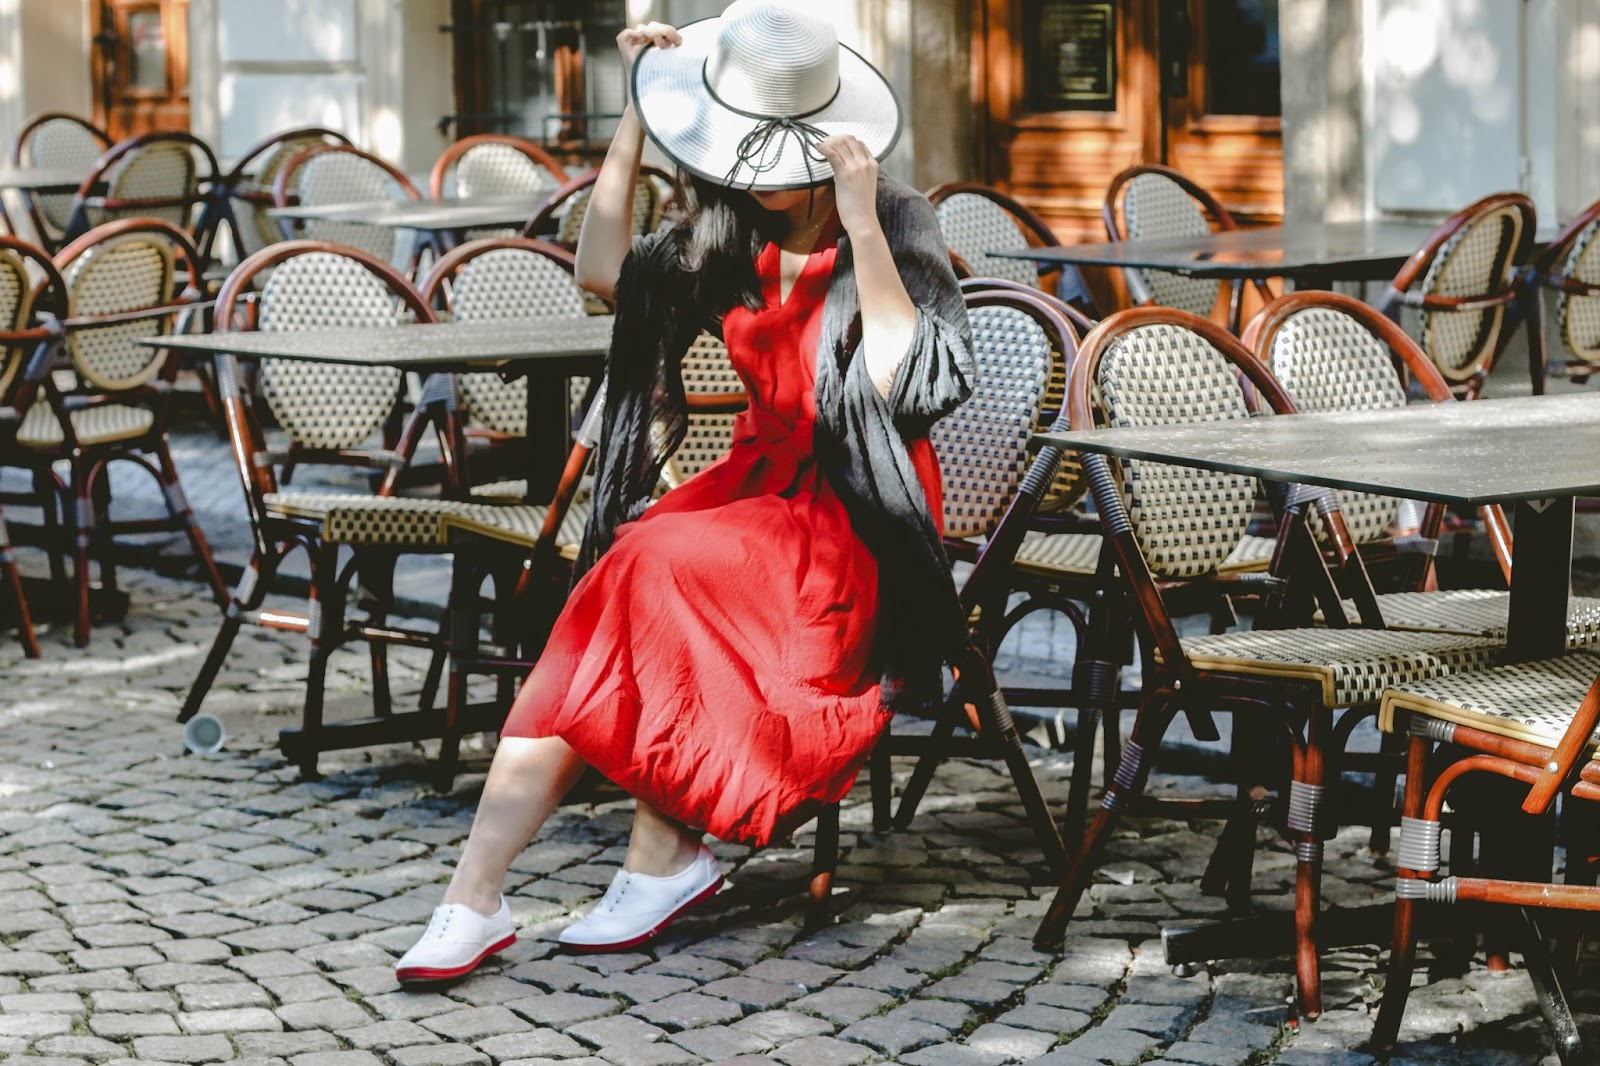 singapore blogger summer europe holiday ootd street style photographer photography look book red uniqlo wiwt outfit